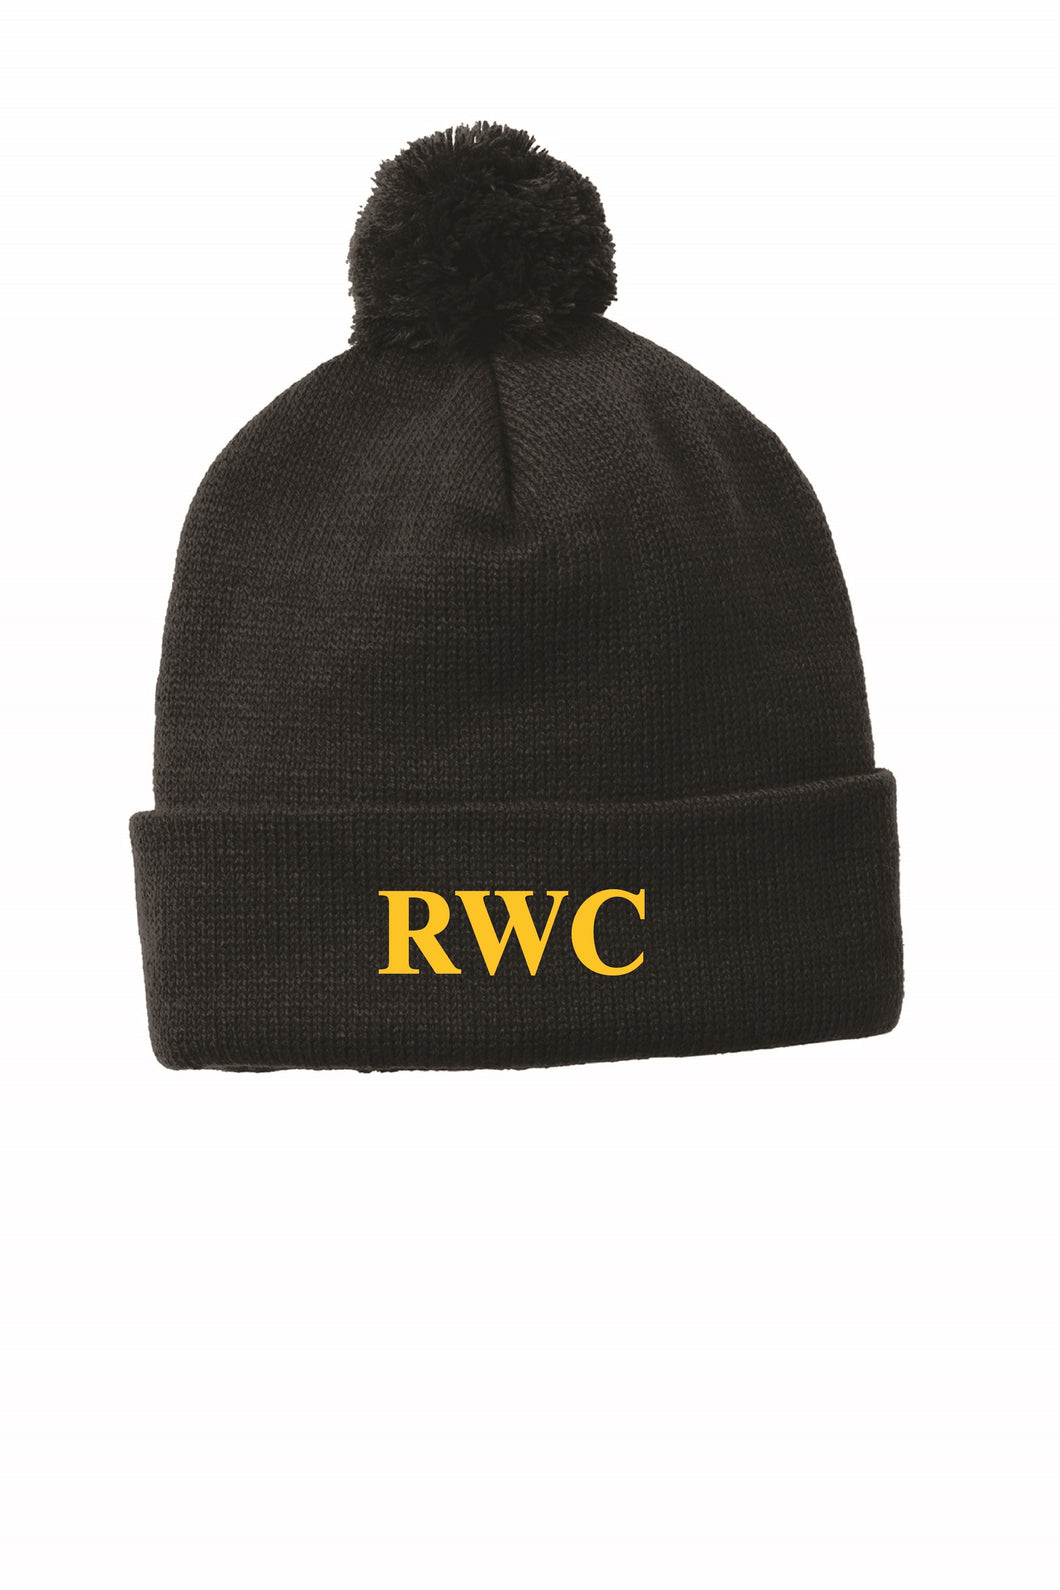 Riverdale Wrestling Club Stocking Hat Black